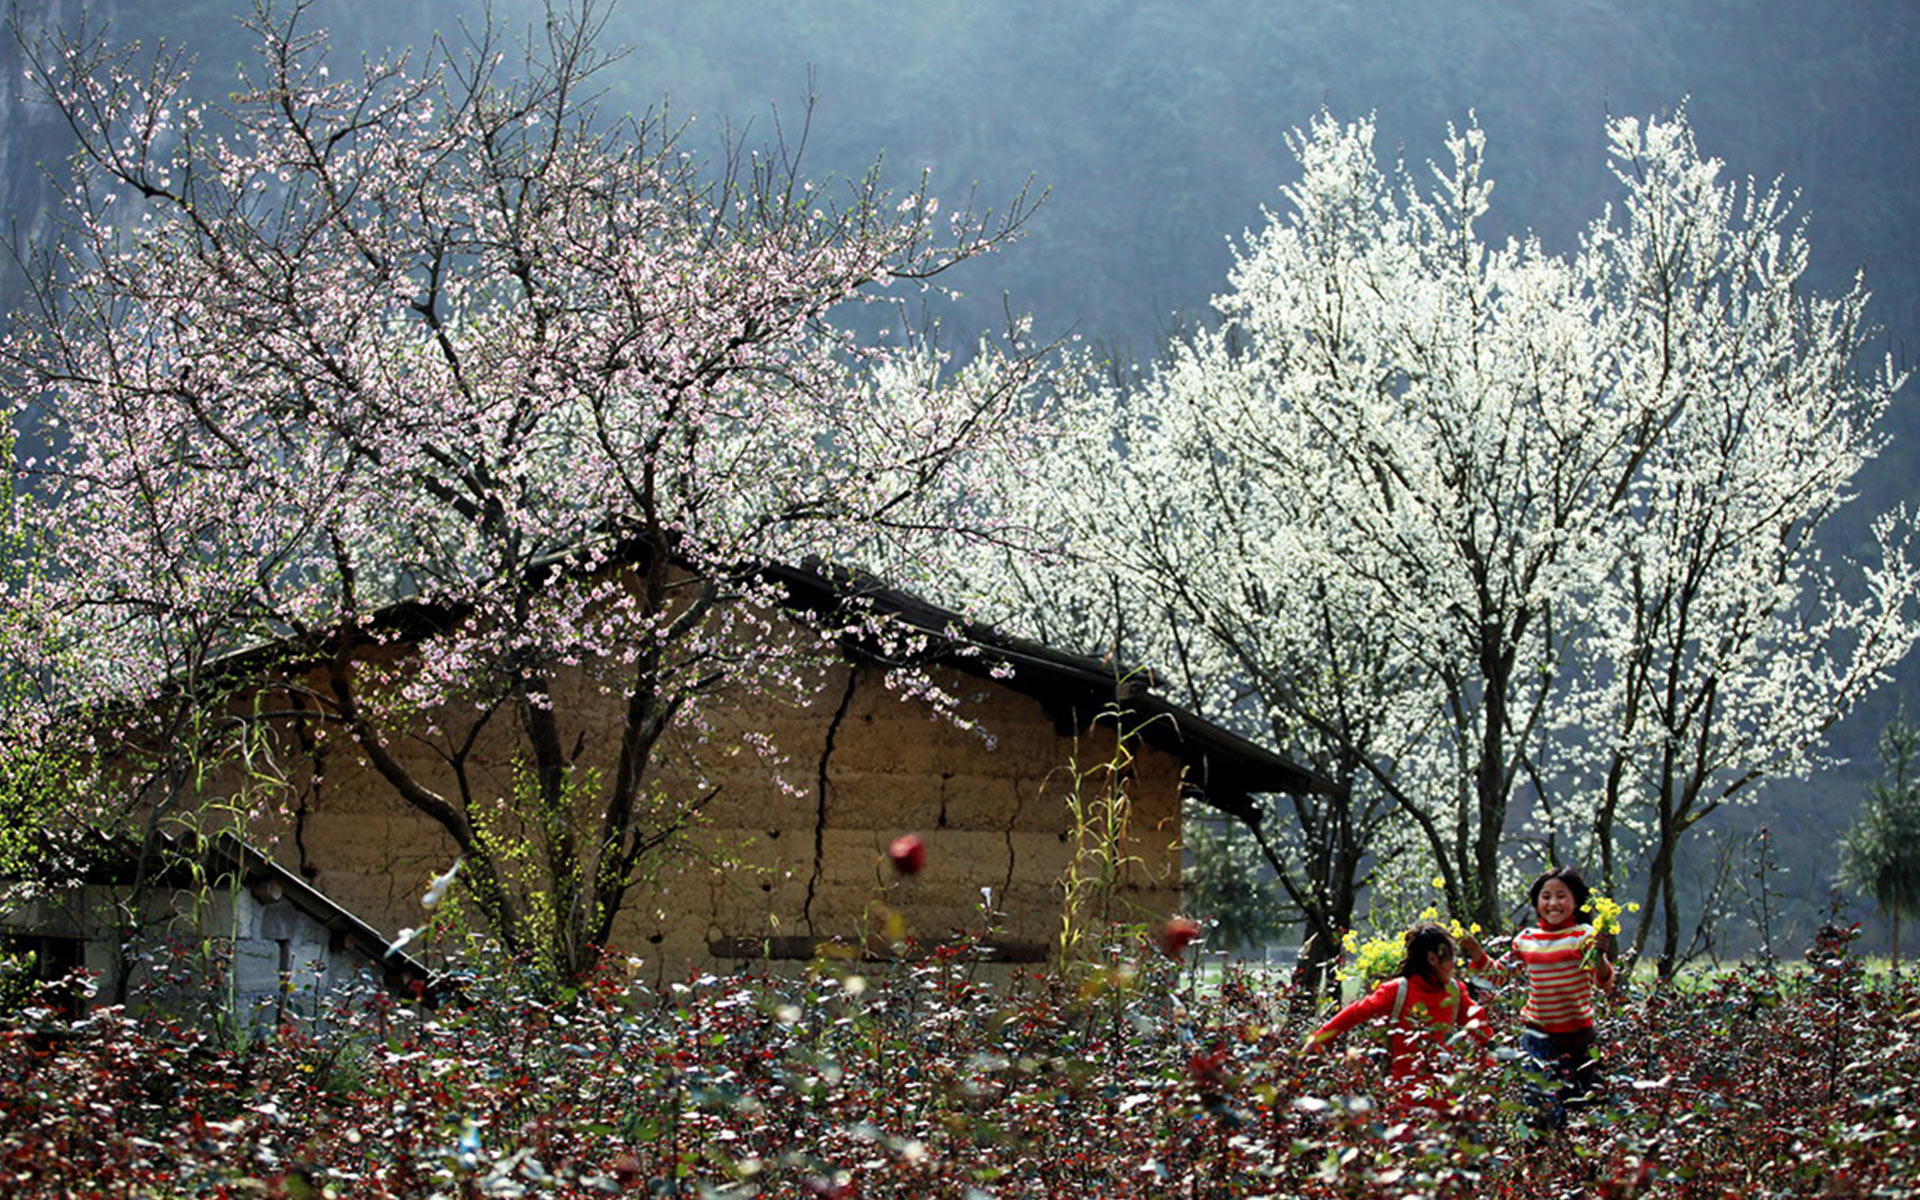 The beauty of Ha Giang in the colors of plum and apricot blossoms